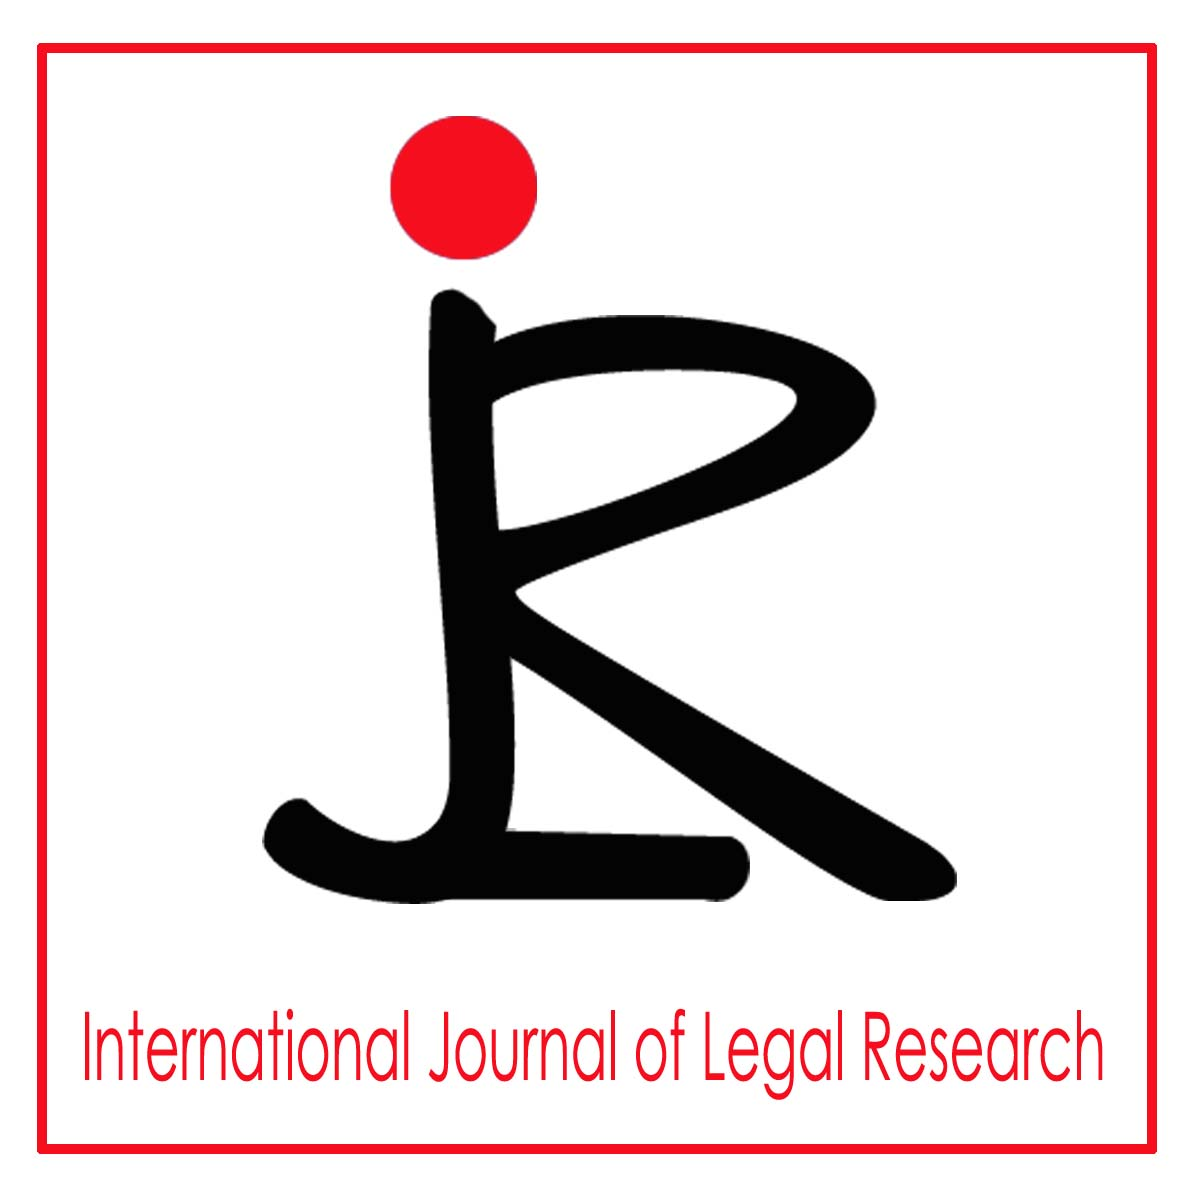 call for legal research papers 2012 in india Call for papers - research projects/proposals call for papers - journals and books peking university joins law school research papers - legal studies posted.